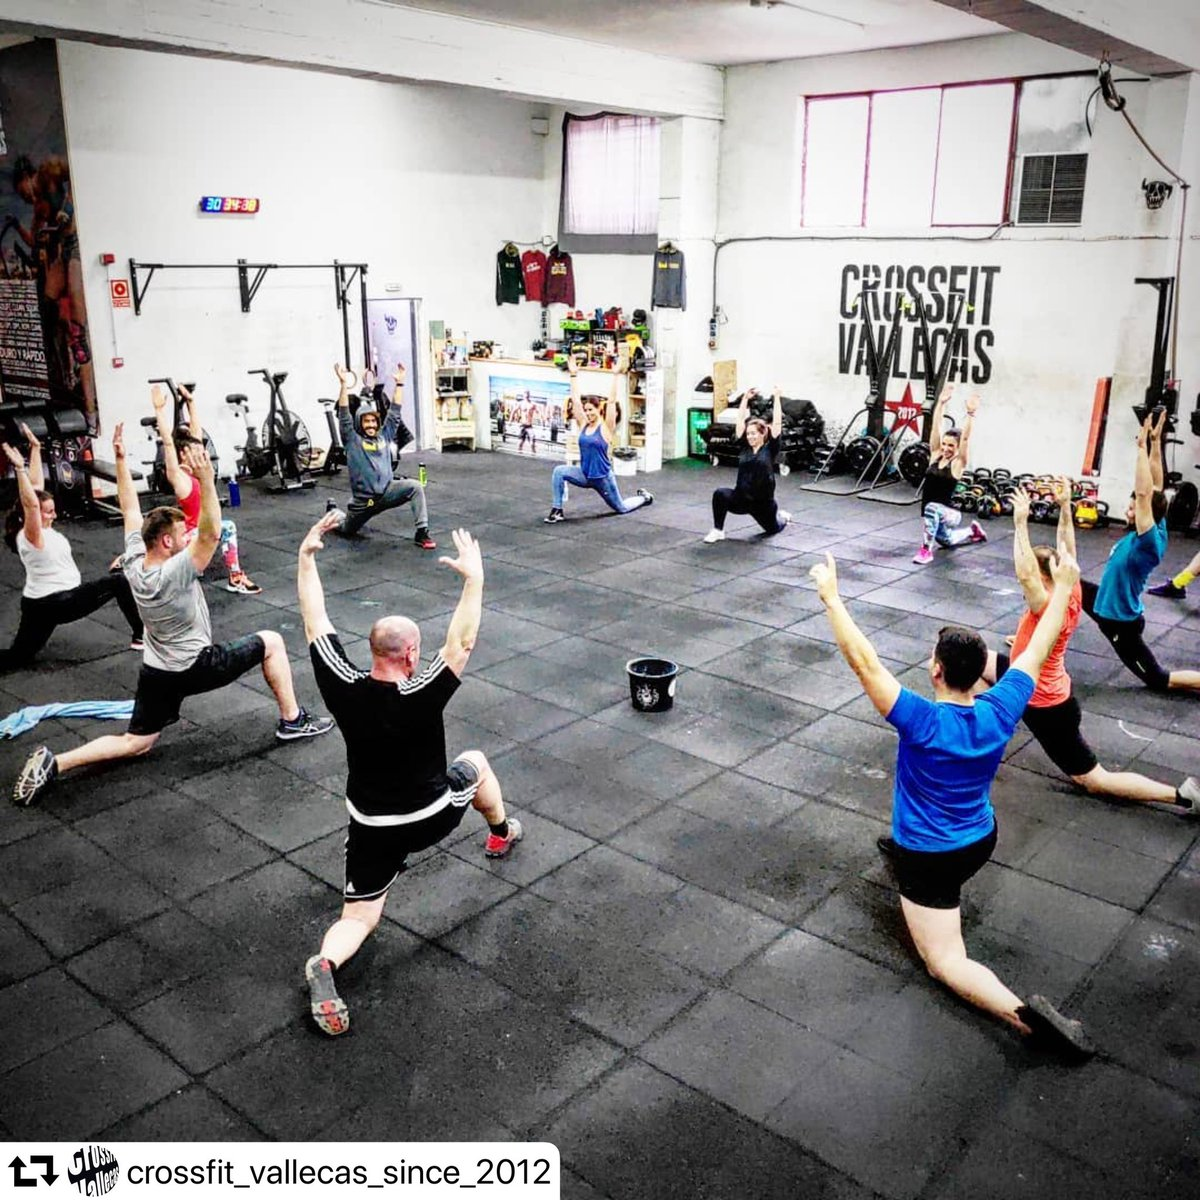 crossfitvallecas hashtag on Twitter